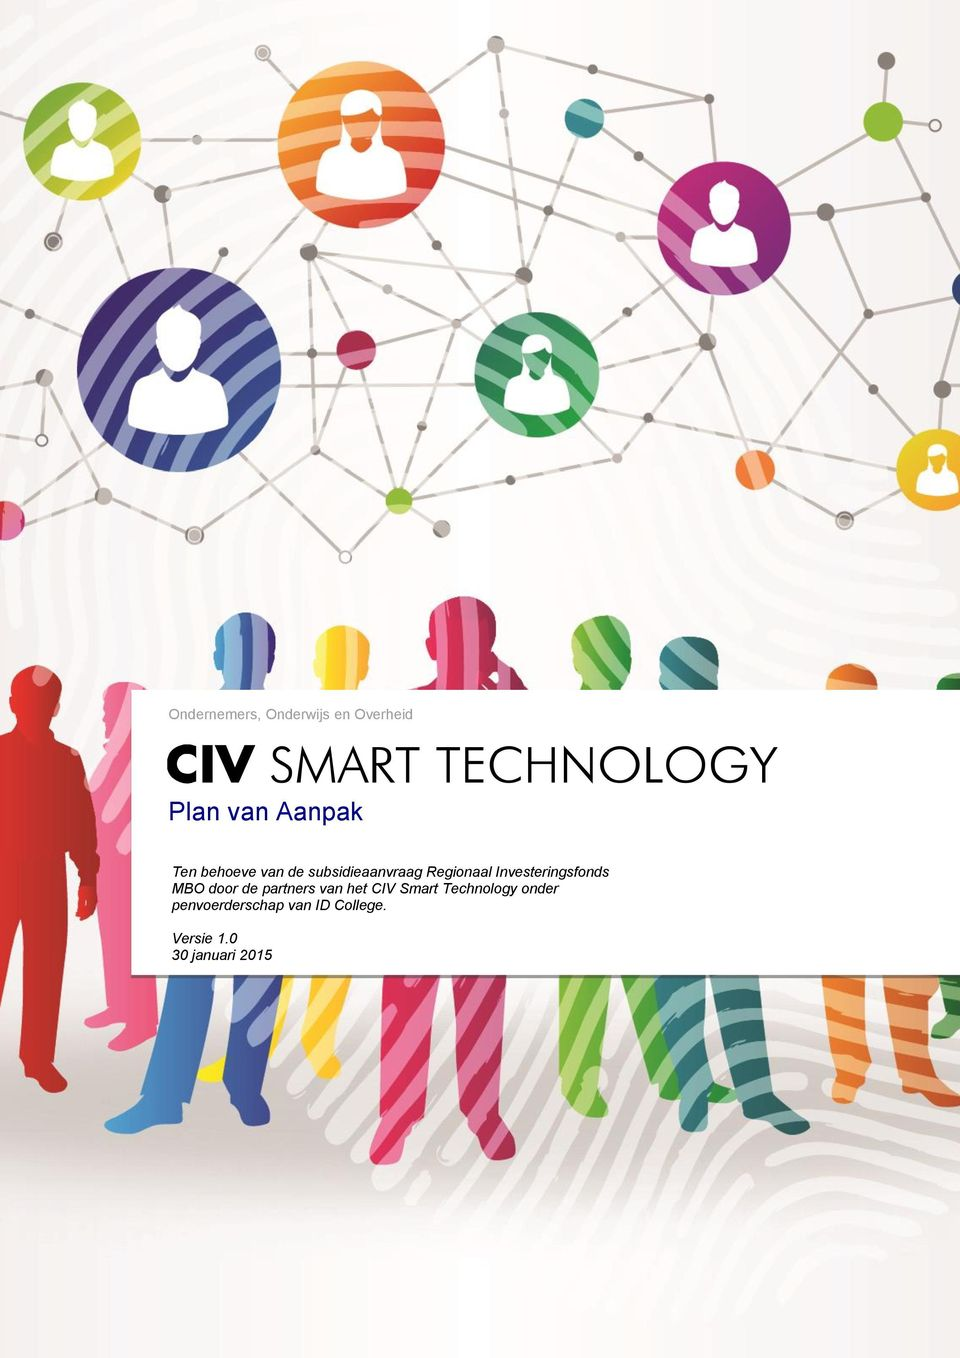 Investeringsfonds MBO door de partners van het CIV Smart